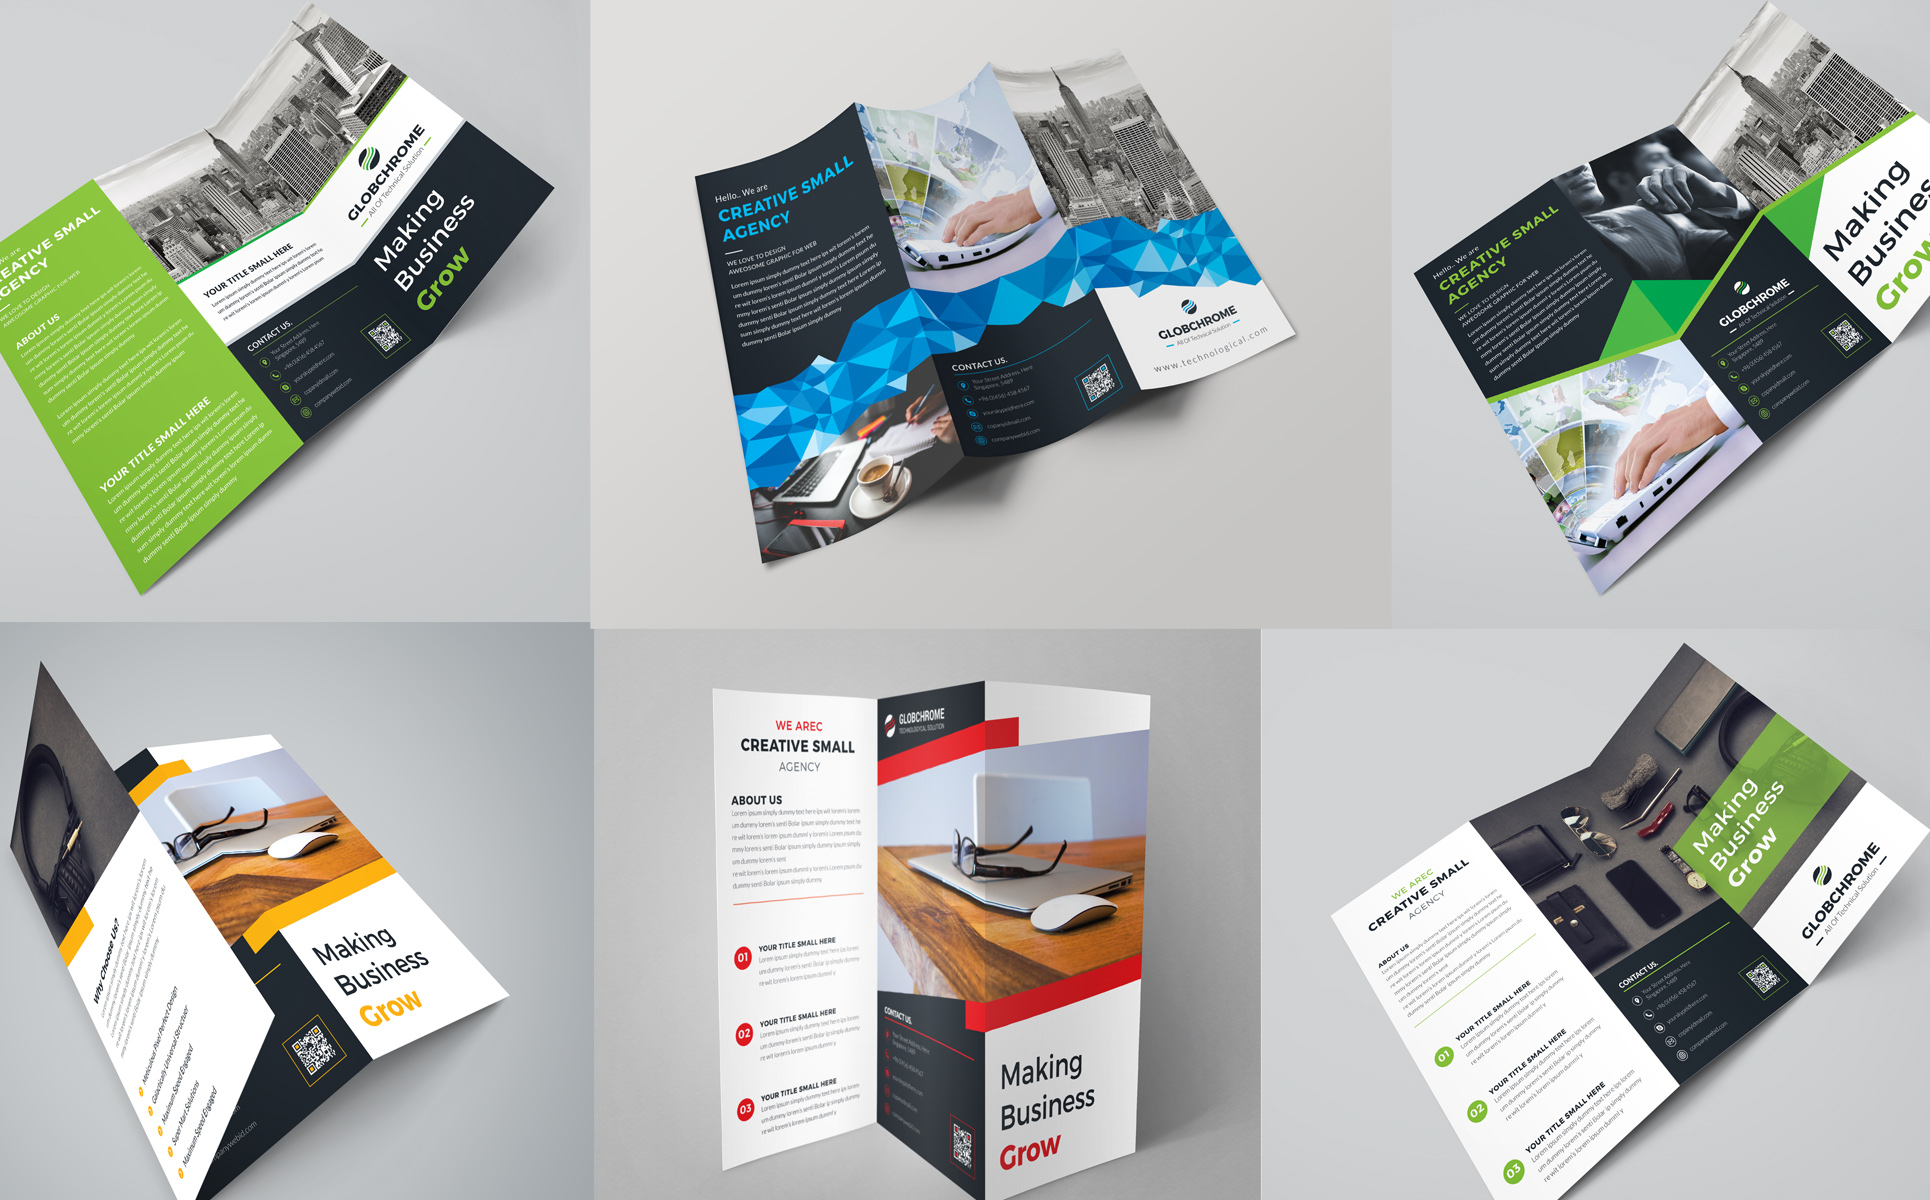 VOLUME 13 Print Ready Trifold Brochure 5+ Items Included Corporate Identity